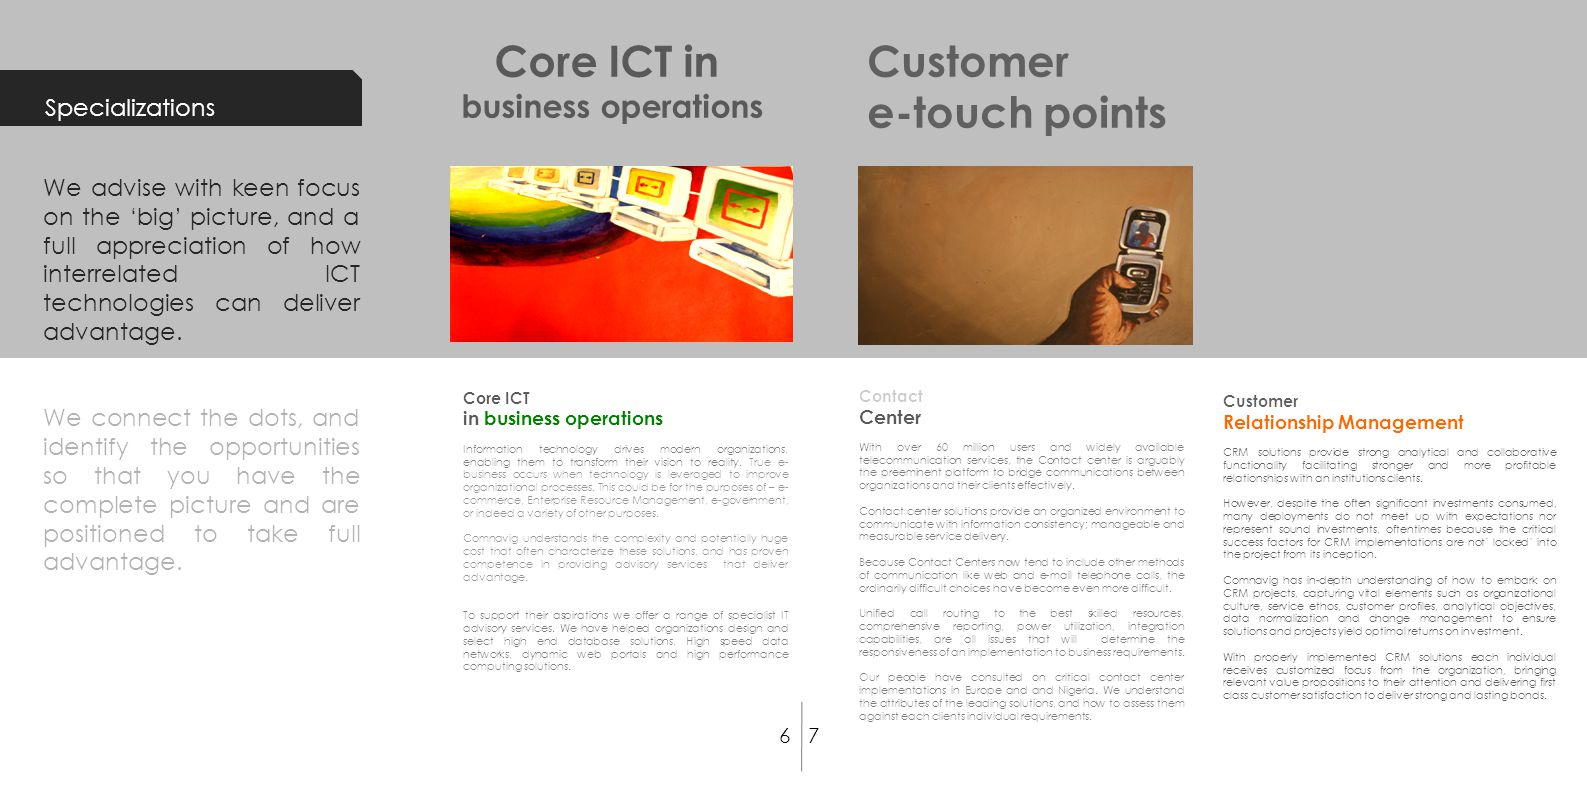 Core ICT in business operations Information technology drives modern organizations, enabling them to transform their vision to reality. True e- busine